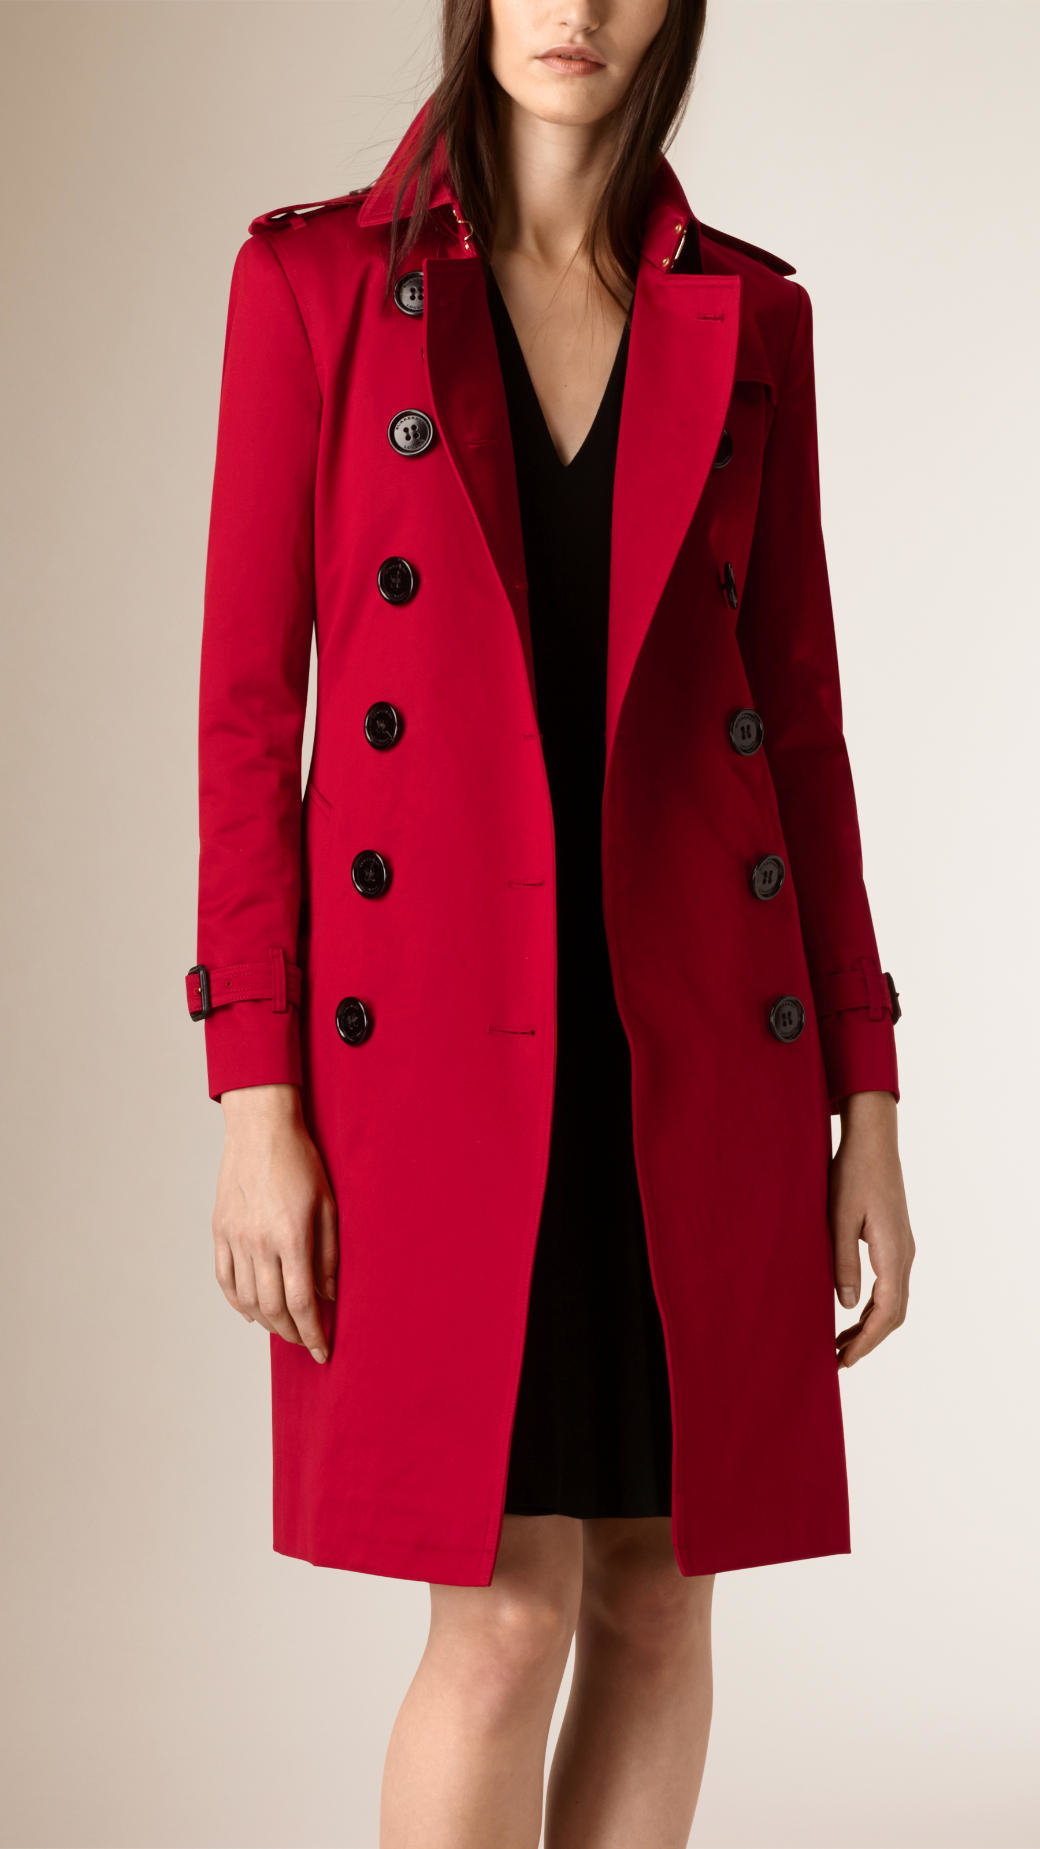 Burberry Pleated Skirt Cotton Sateen Trench Coat in Red | Lyst